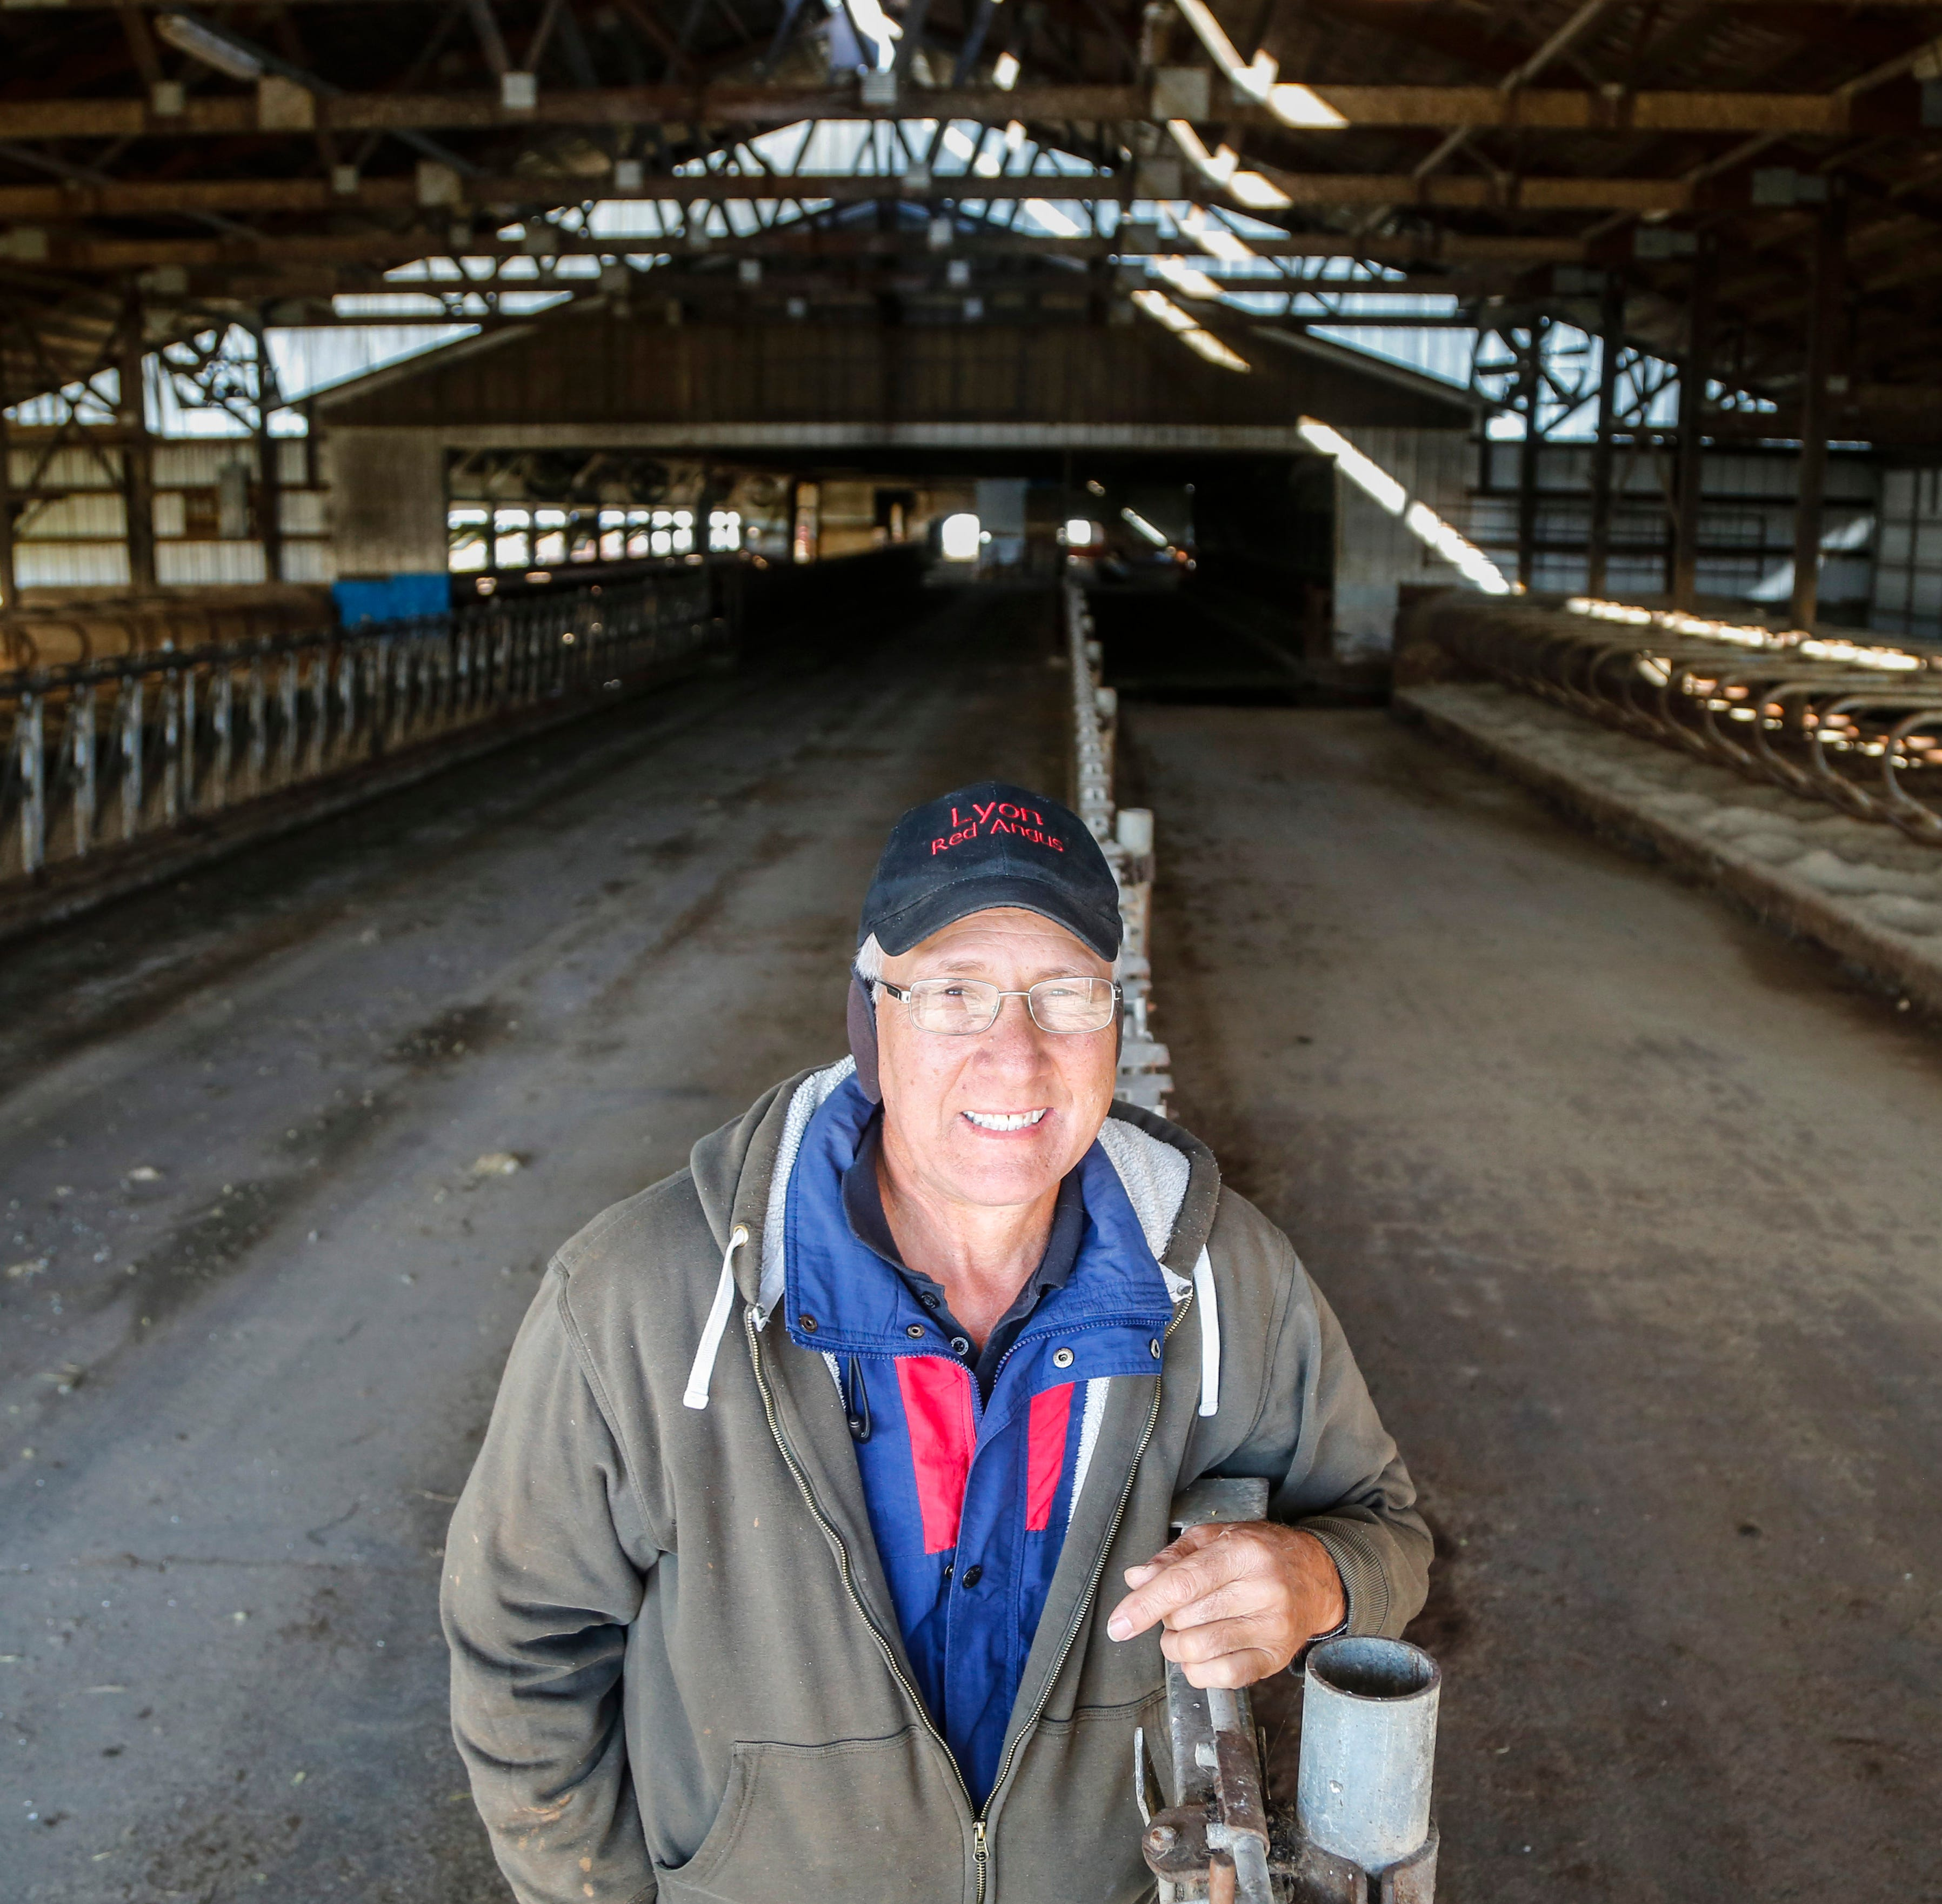 After four years of catastrophic losses, Iowa dairies are closing their barn doors